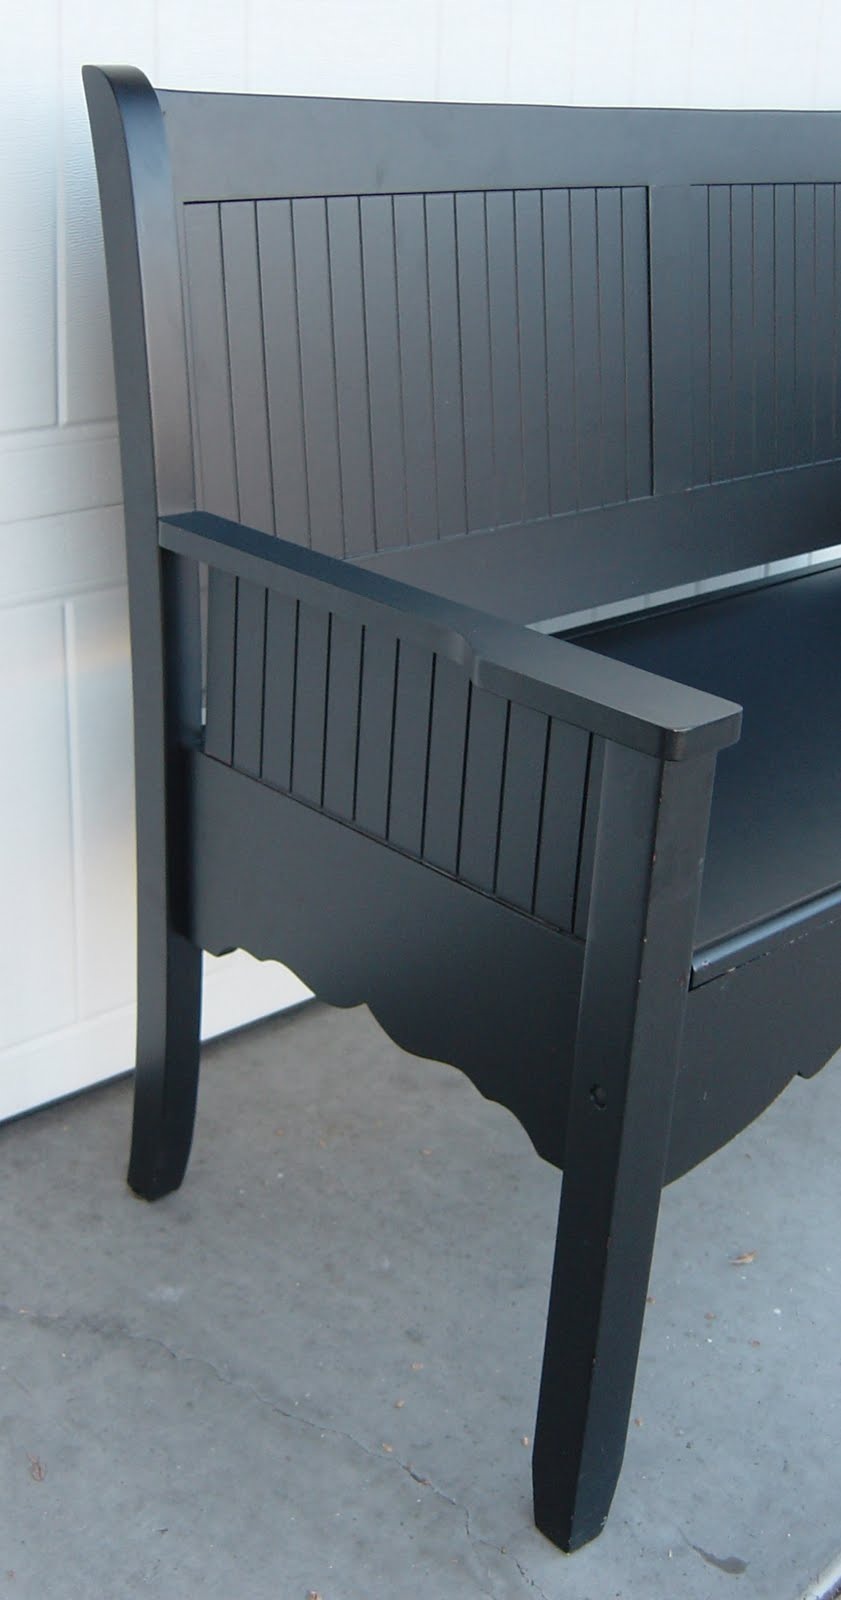 The Backyard Boutique By Five To Nine Furnishings Black Storage Bench Toy Box